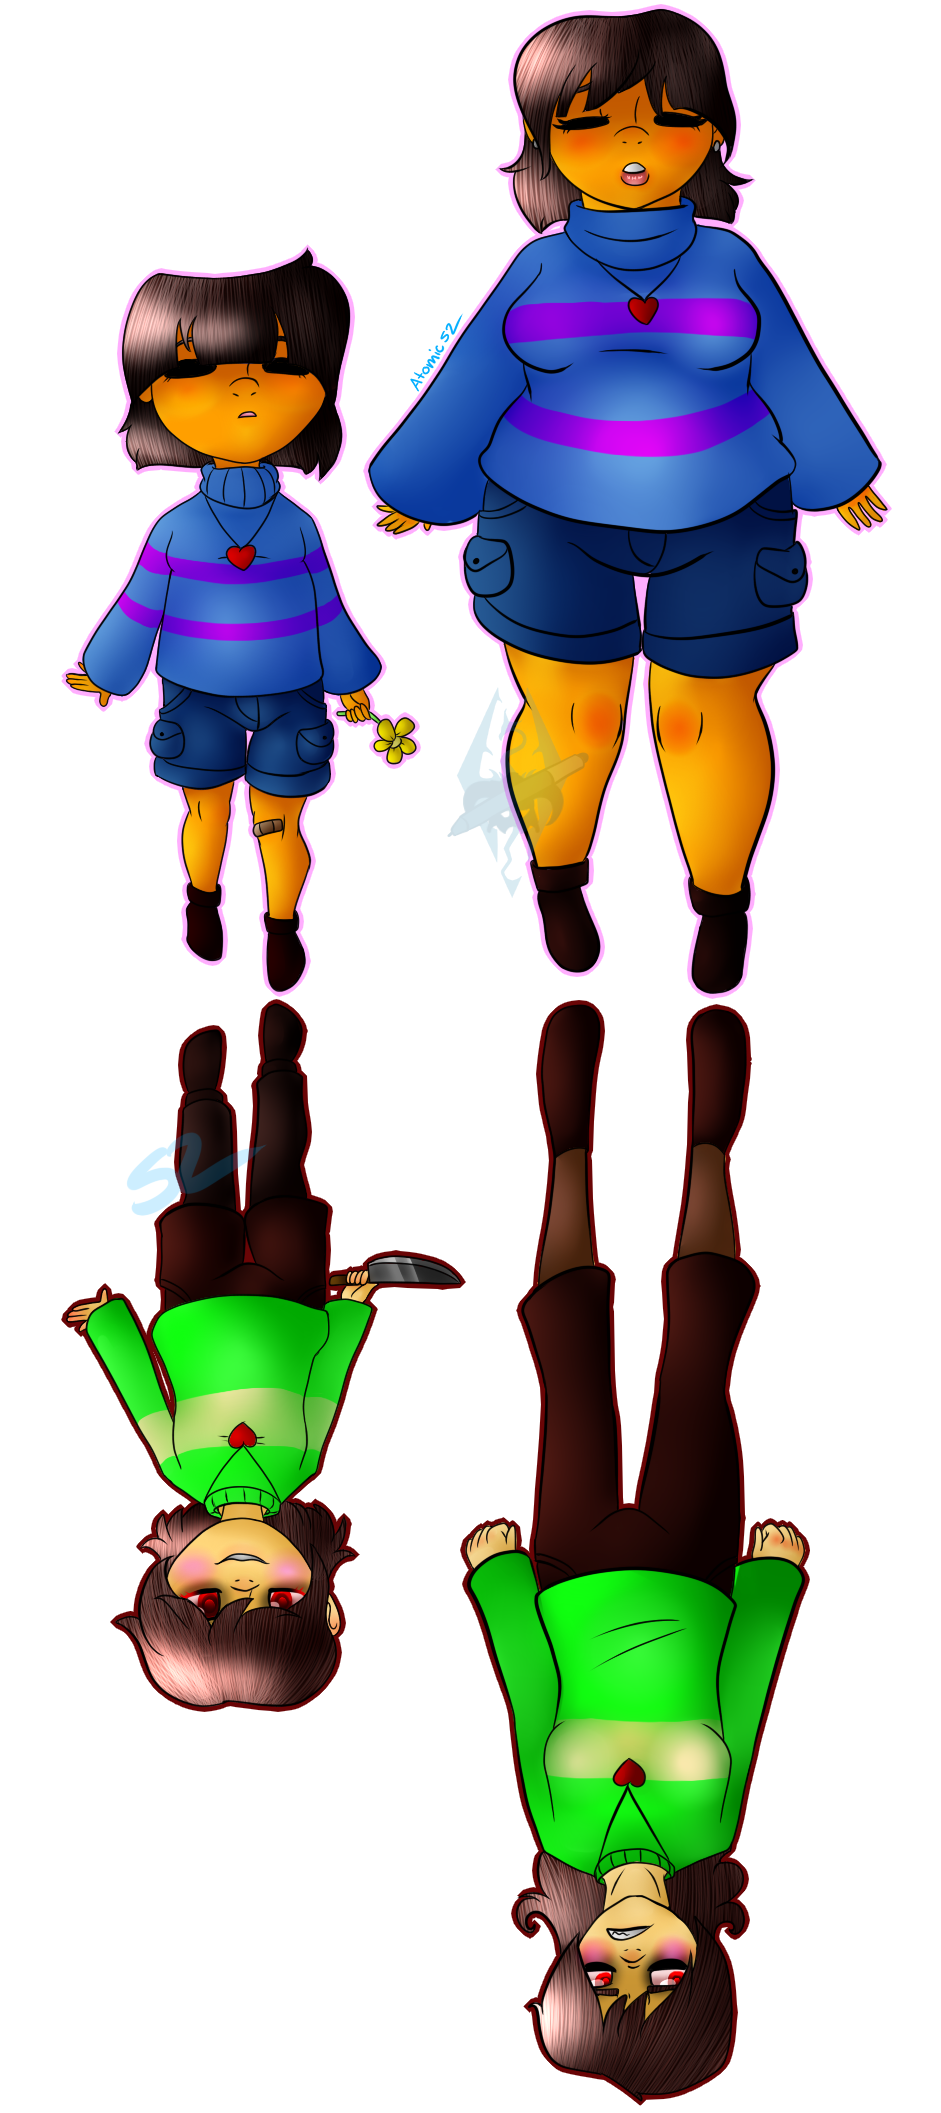 Frisk and Chara by Atomic52